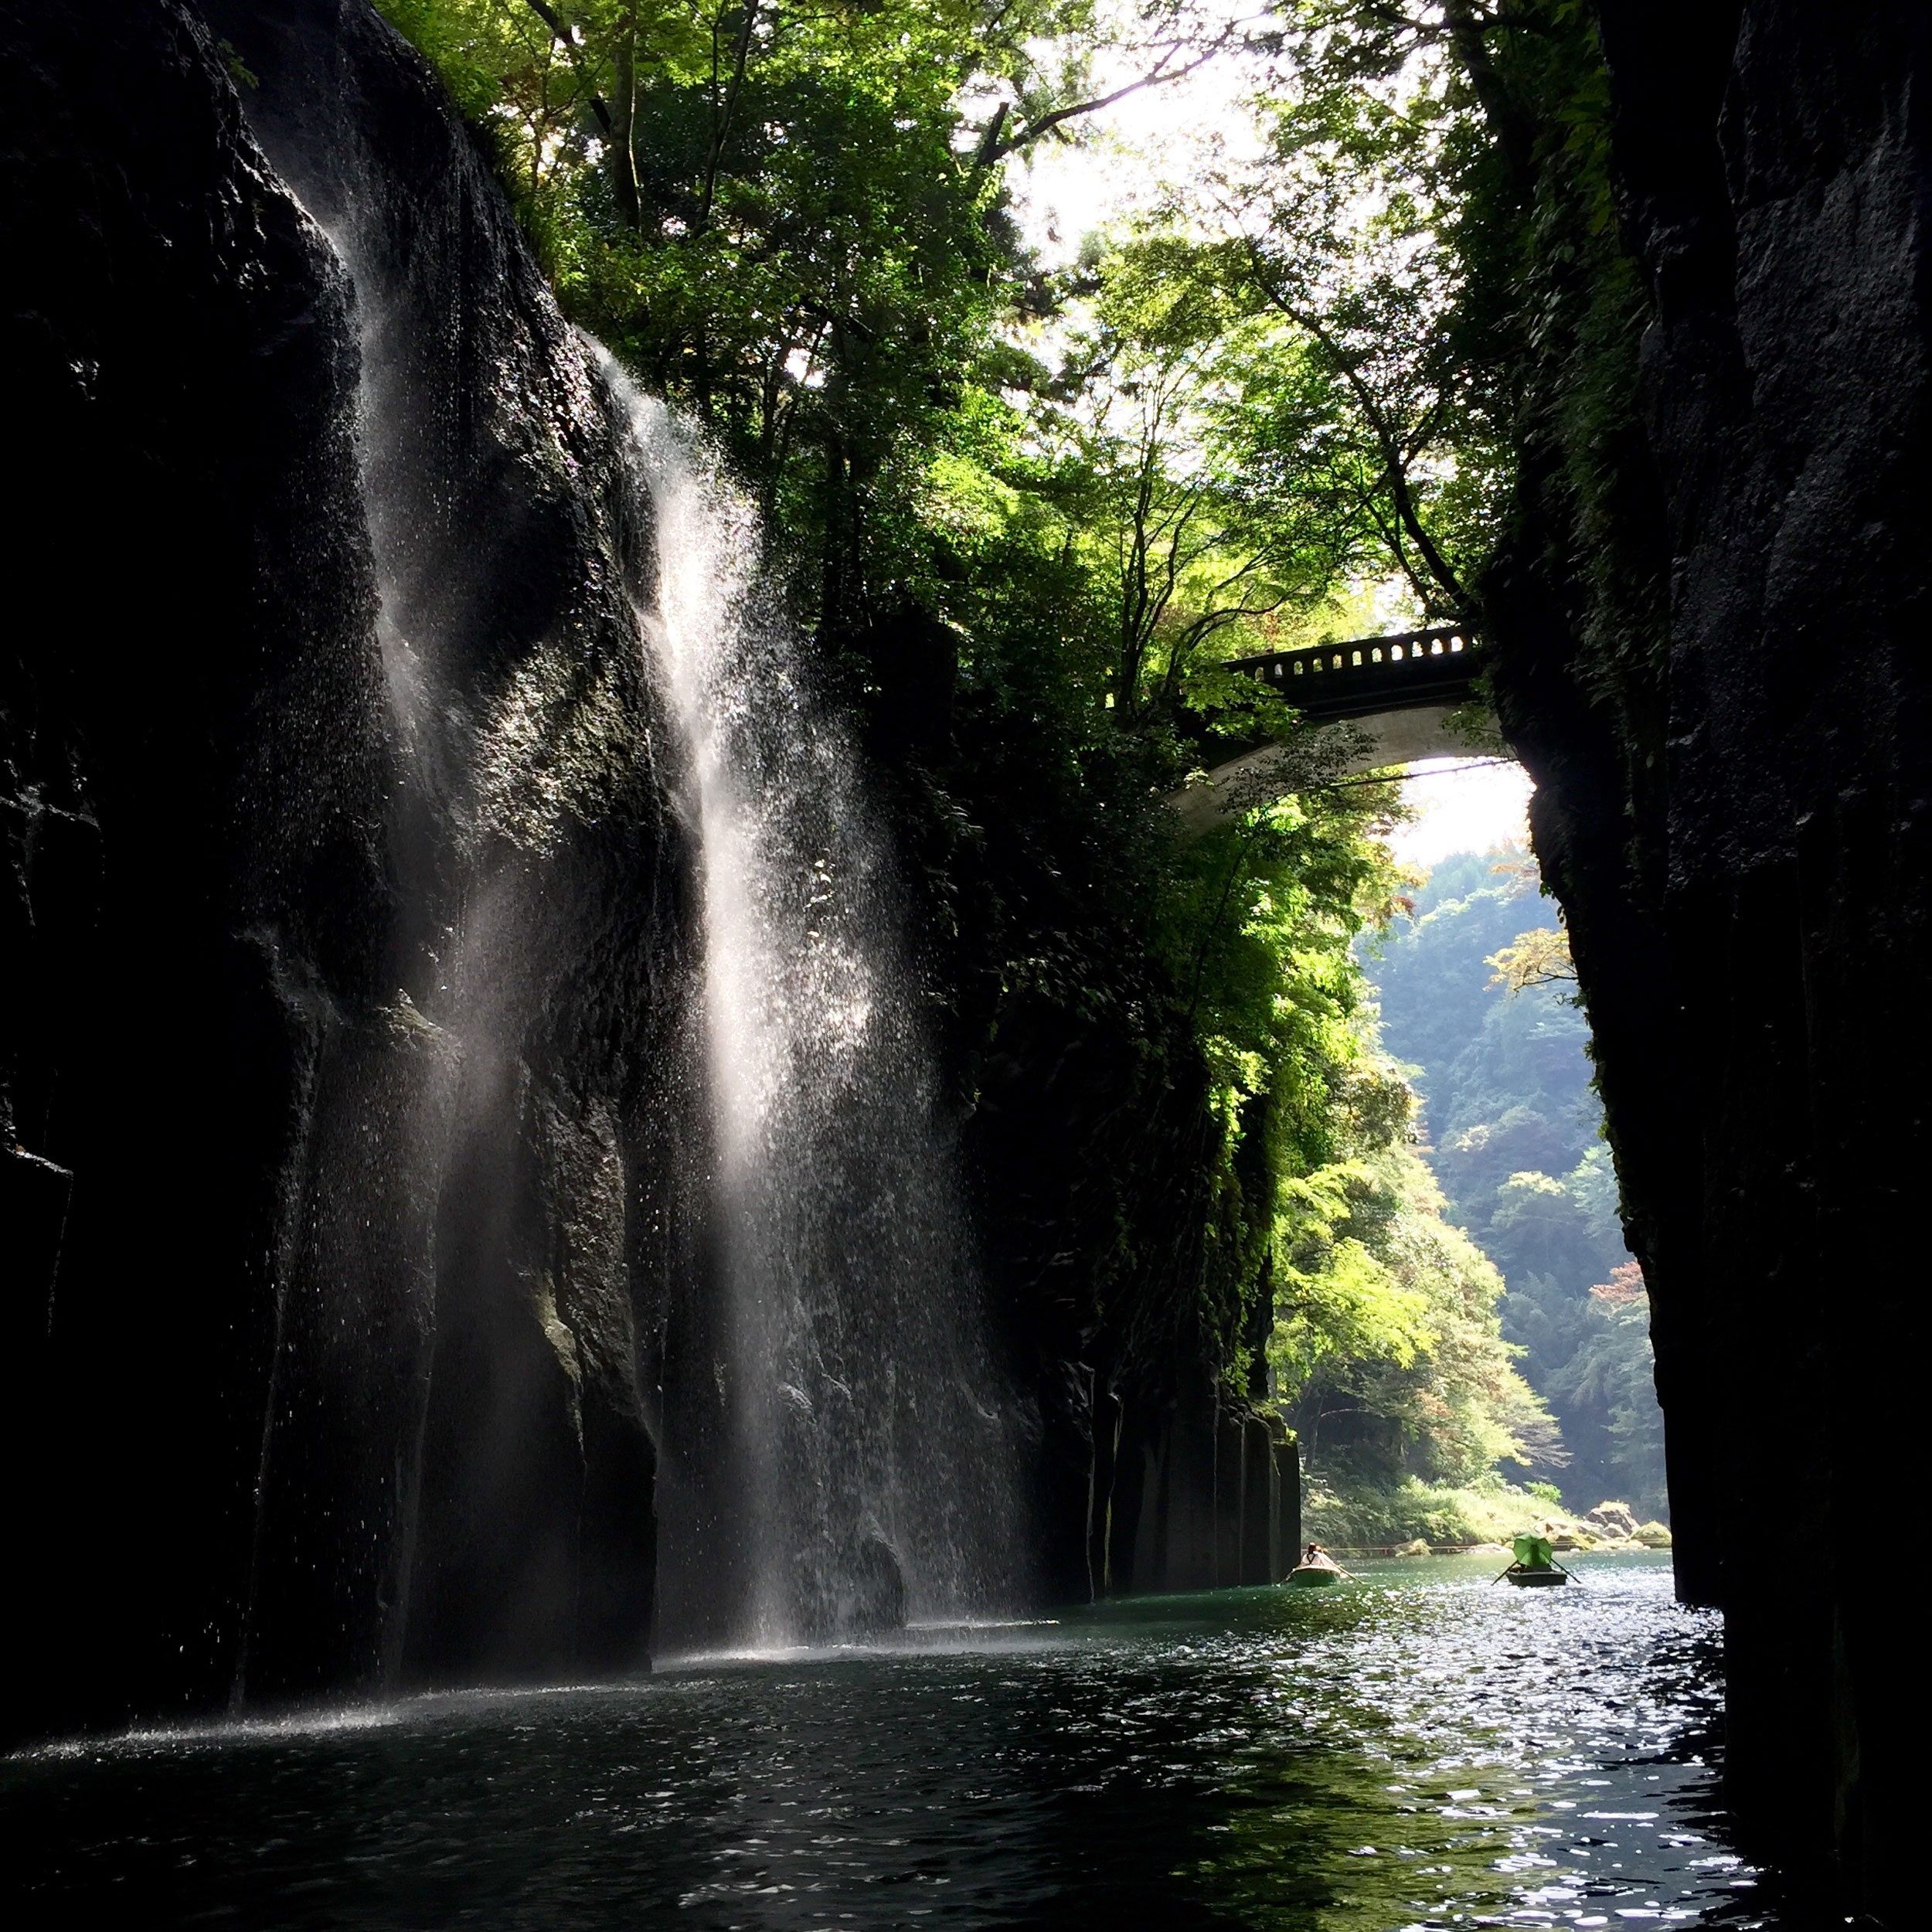 Takachiho Gorge in Kyushi, Japan